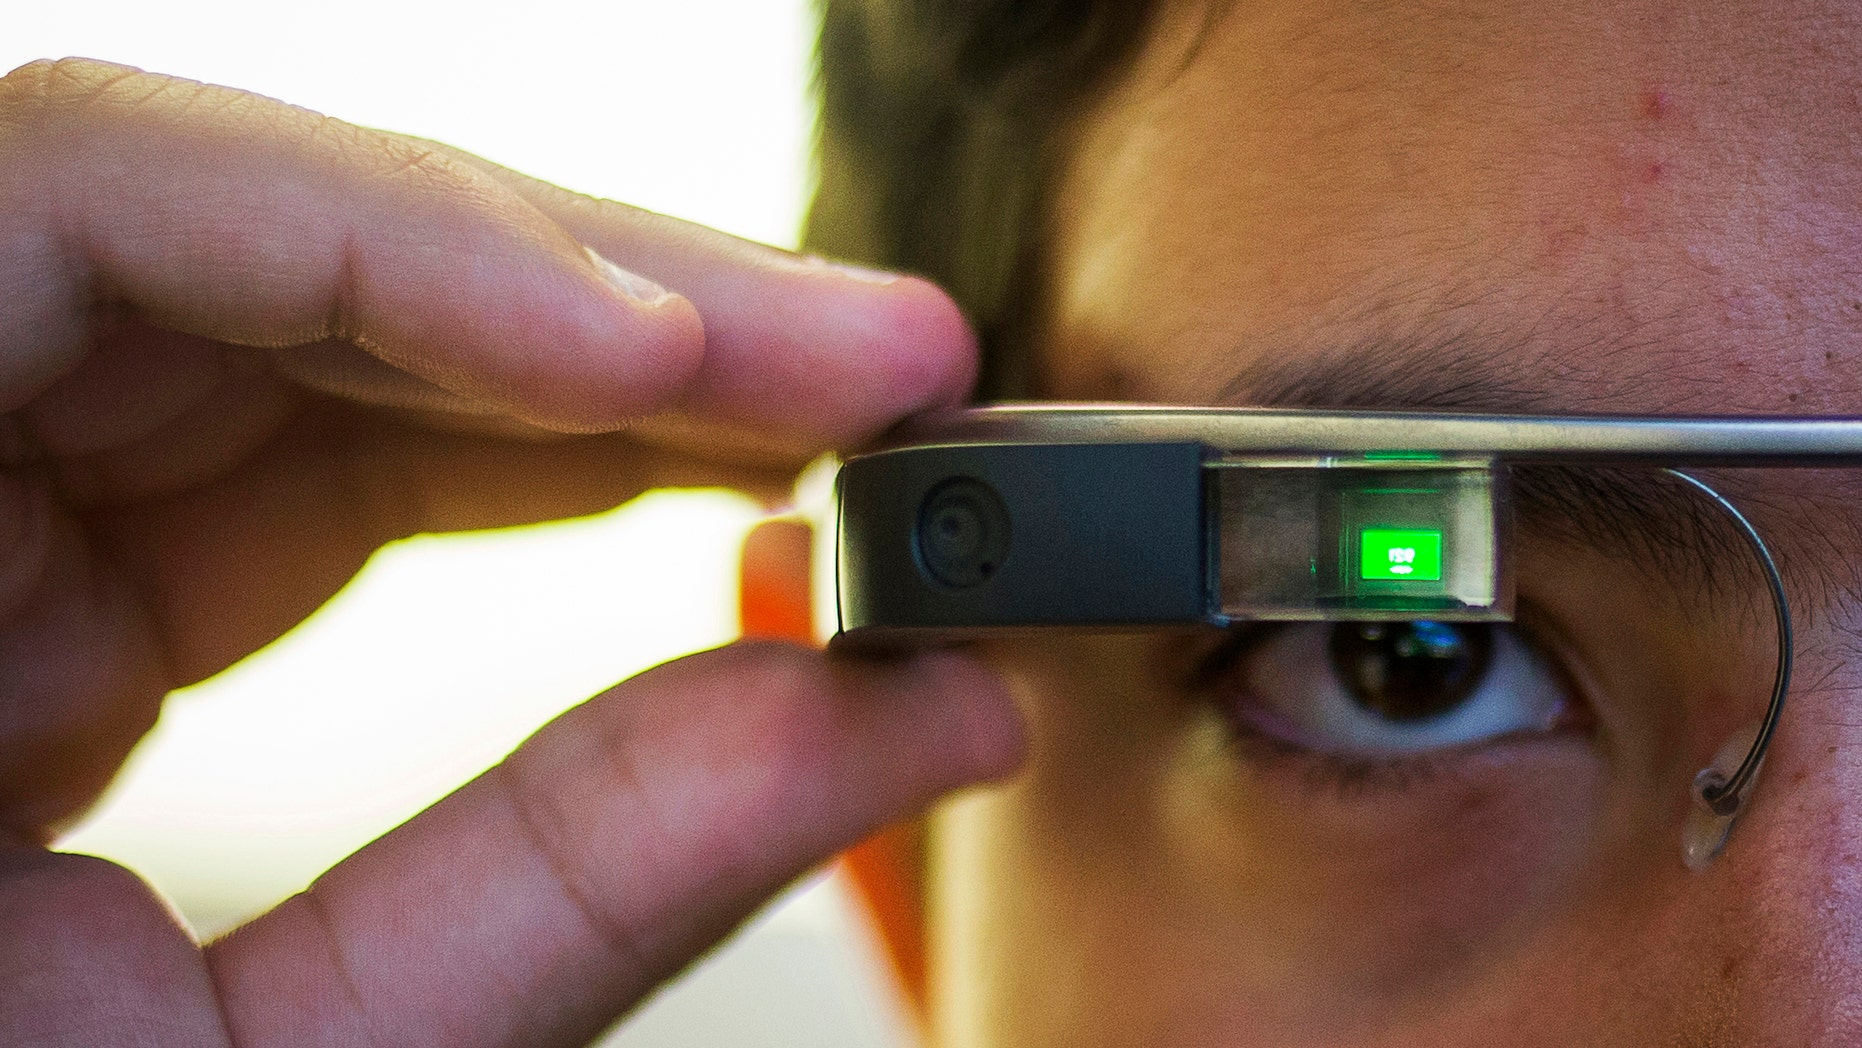 Experts: Why wearable tech could pose health risks | Fox News